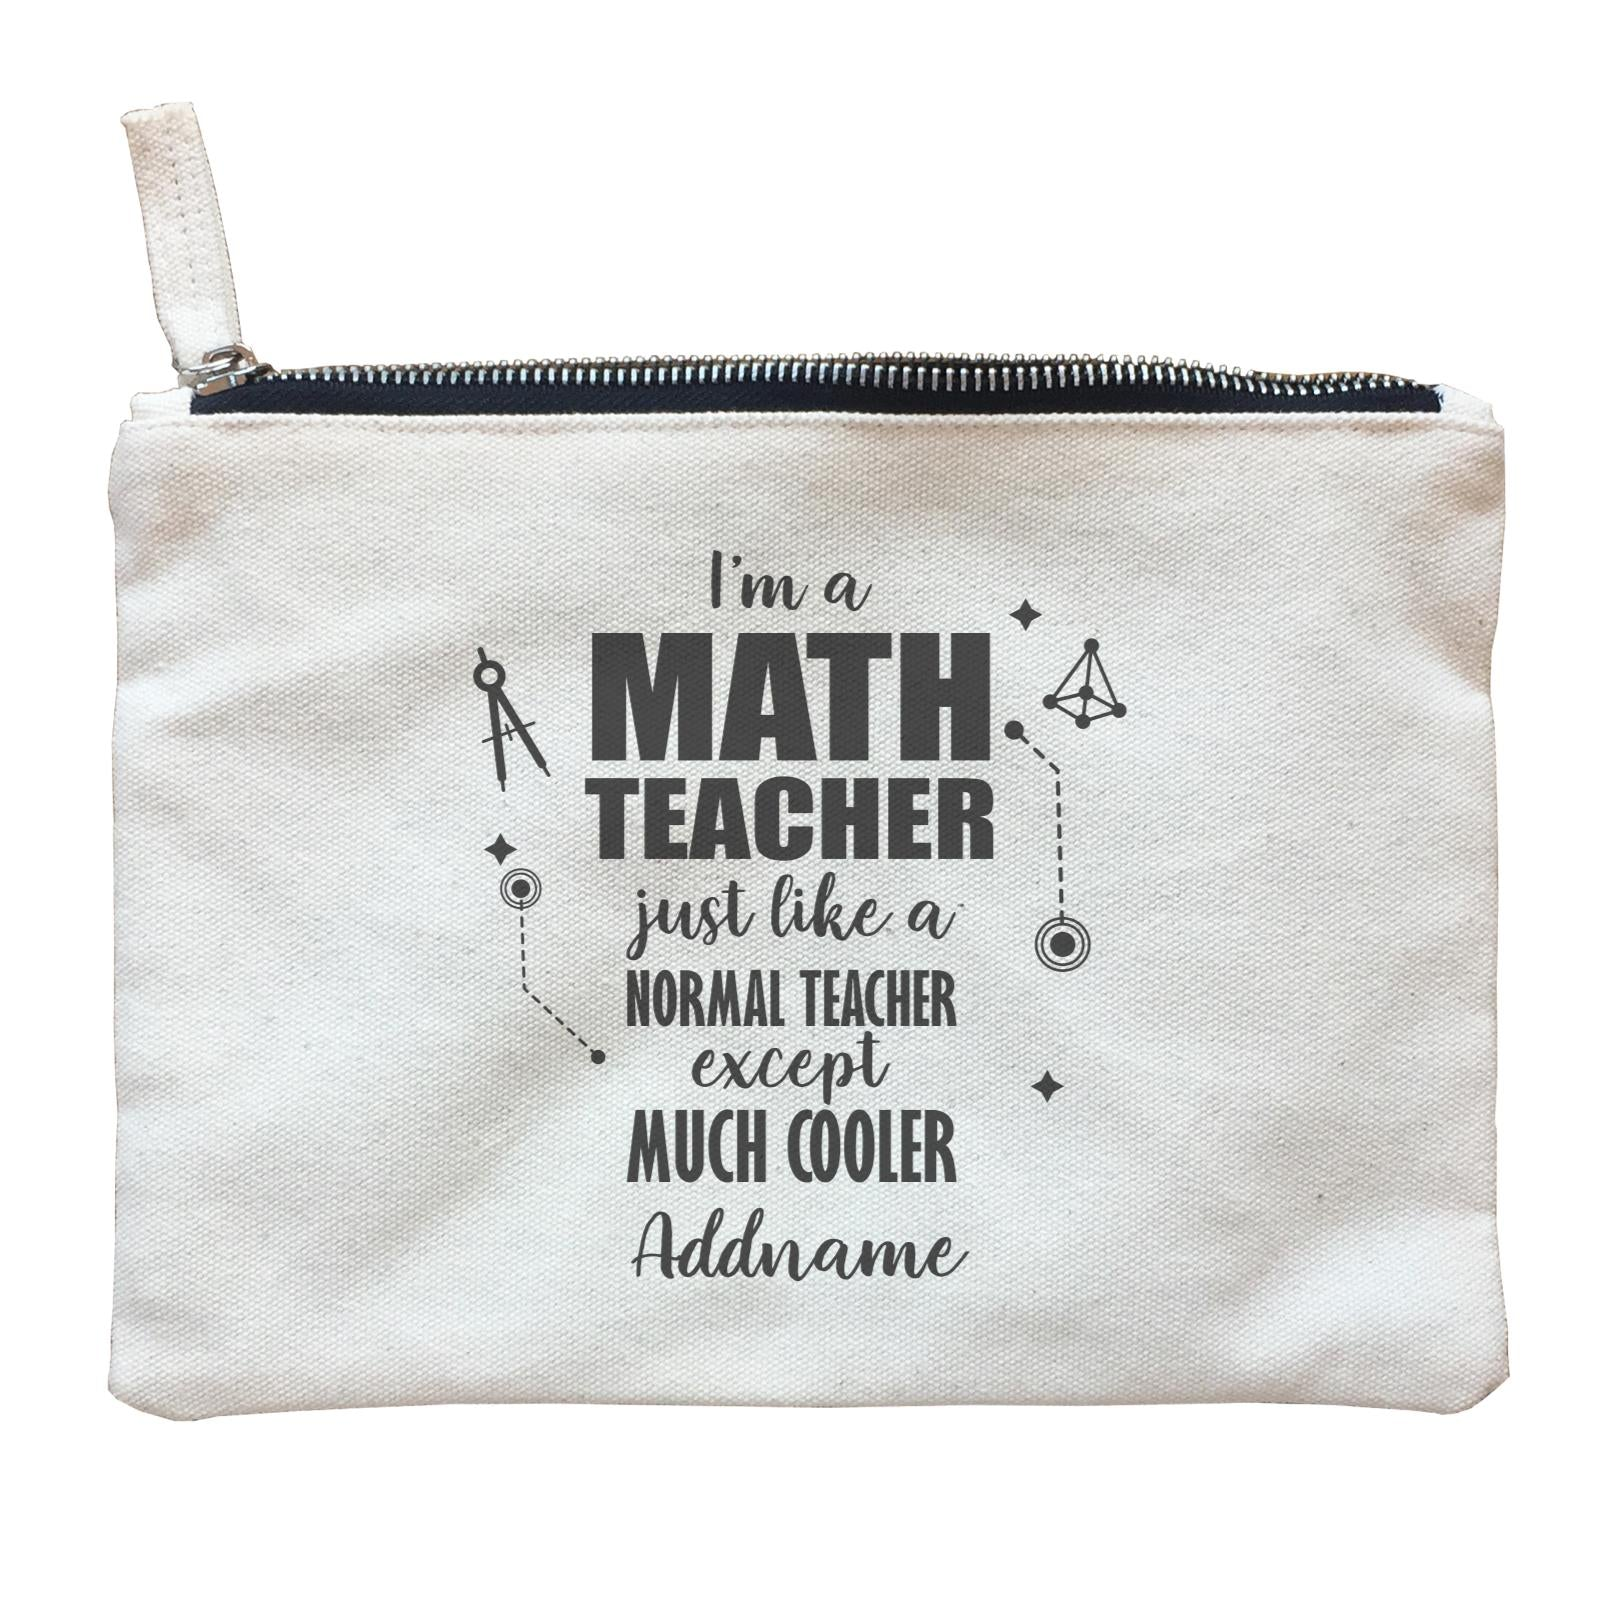 Subject Teachers 1 I'm A Math Teacher Addname Zipper Pouch